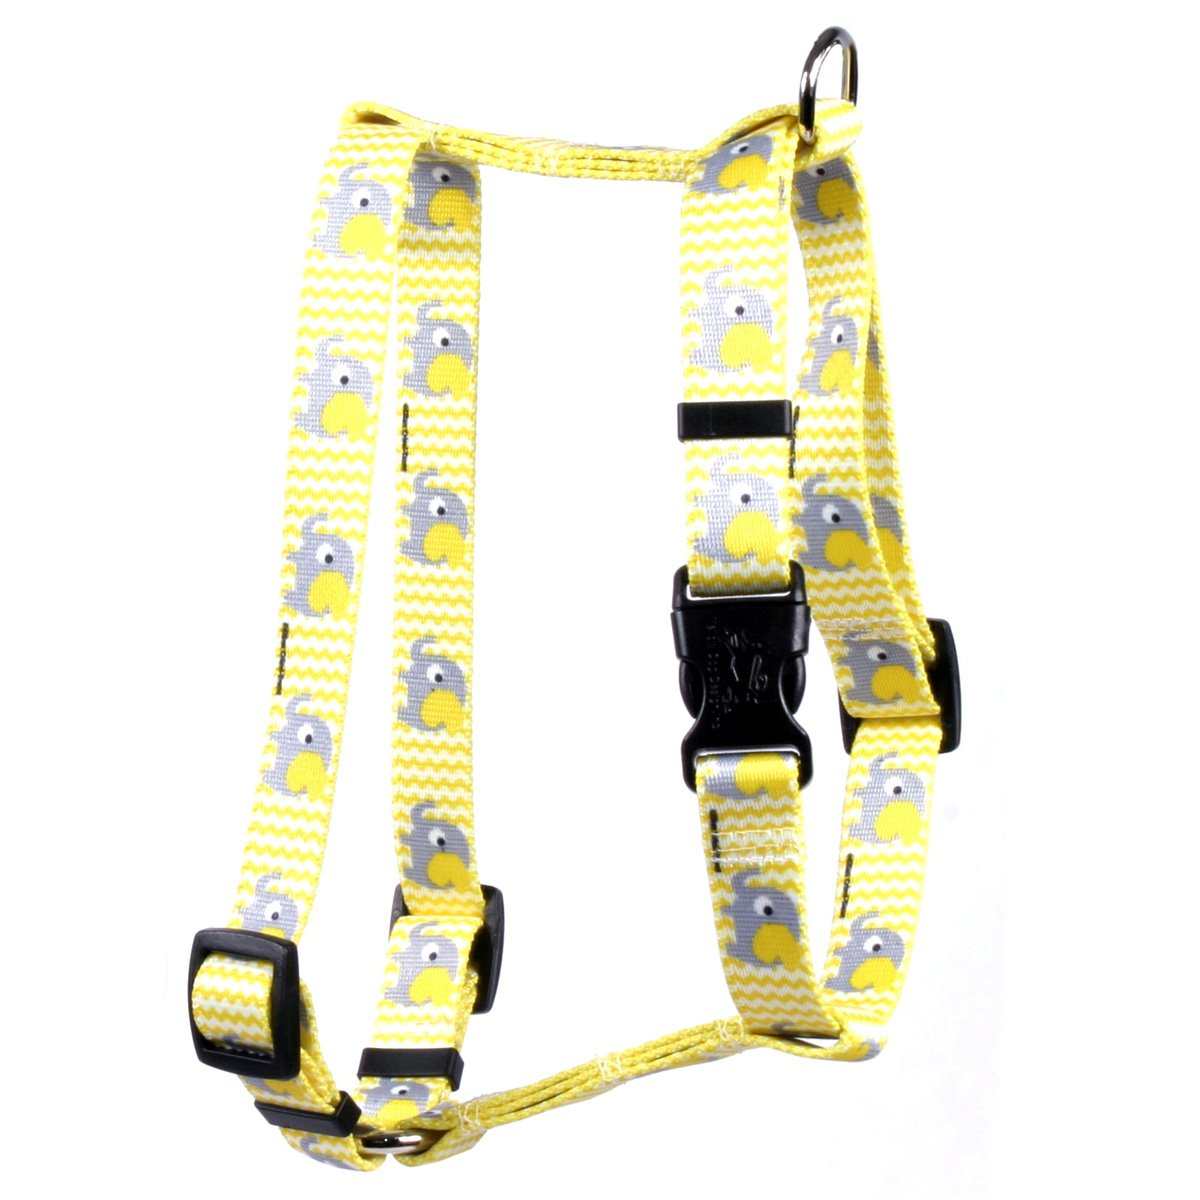 Yellow Dog Design Yellow Elephants Roman Style H Dog Harness-Small/Medium-3/4 and fits Chest 14 to 20'' by Yellow Dog Design